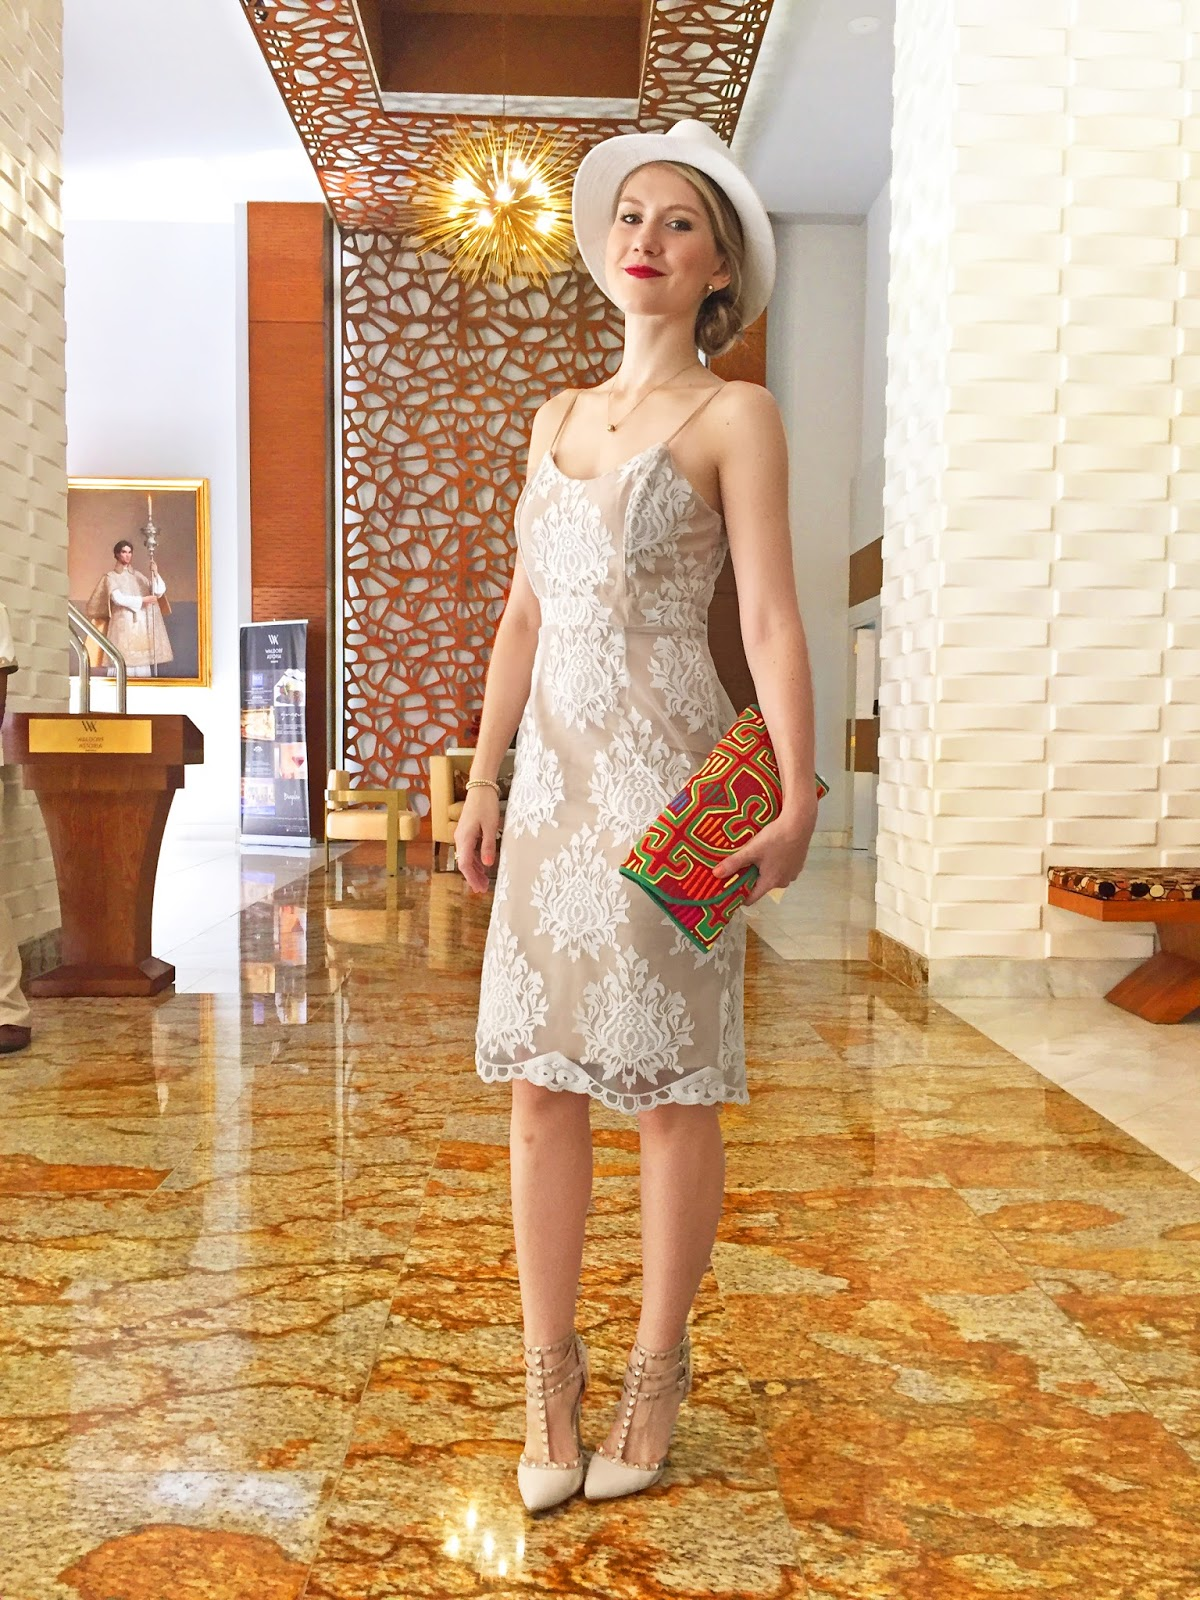 Classy Brunch Outfit in a White Lace Dress